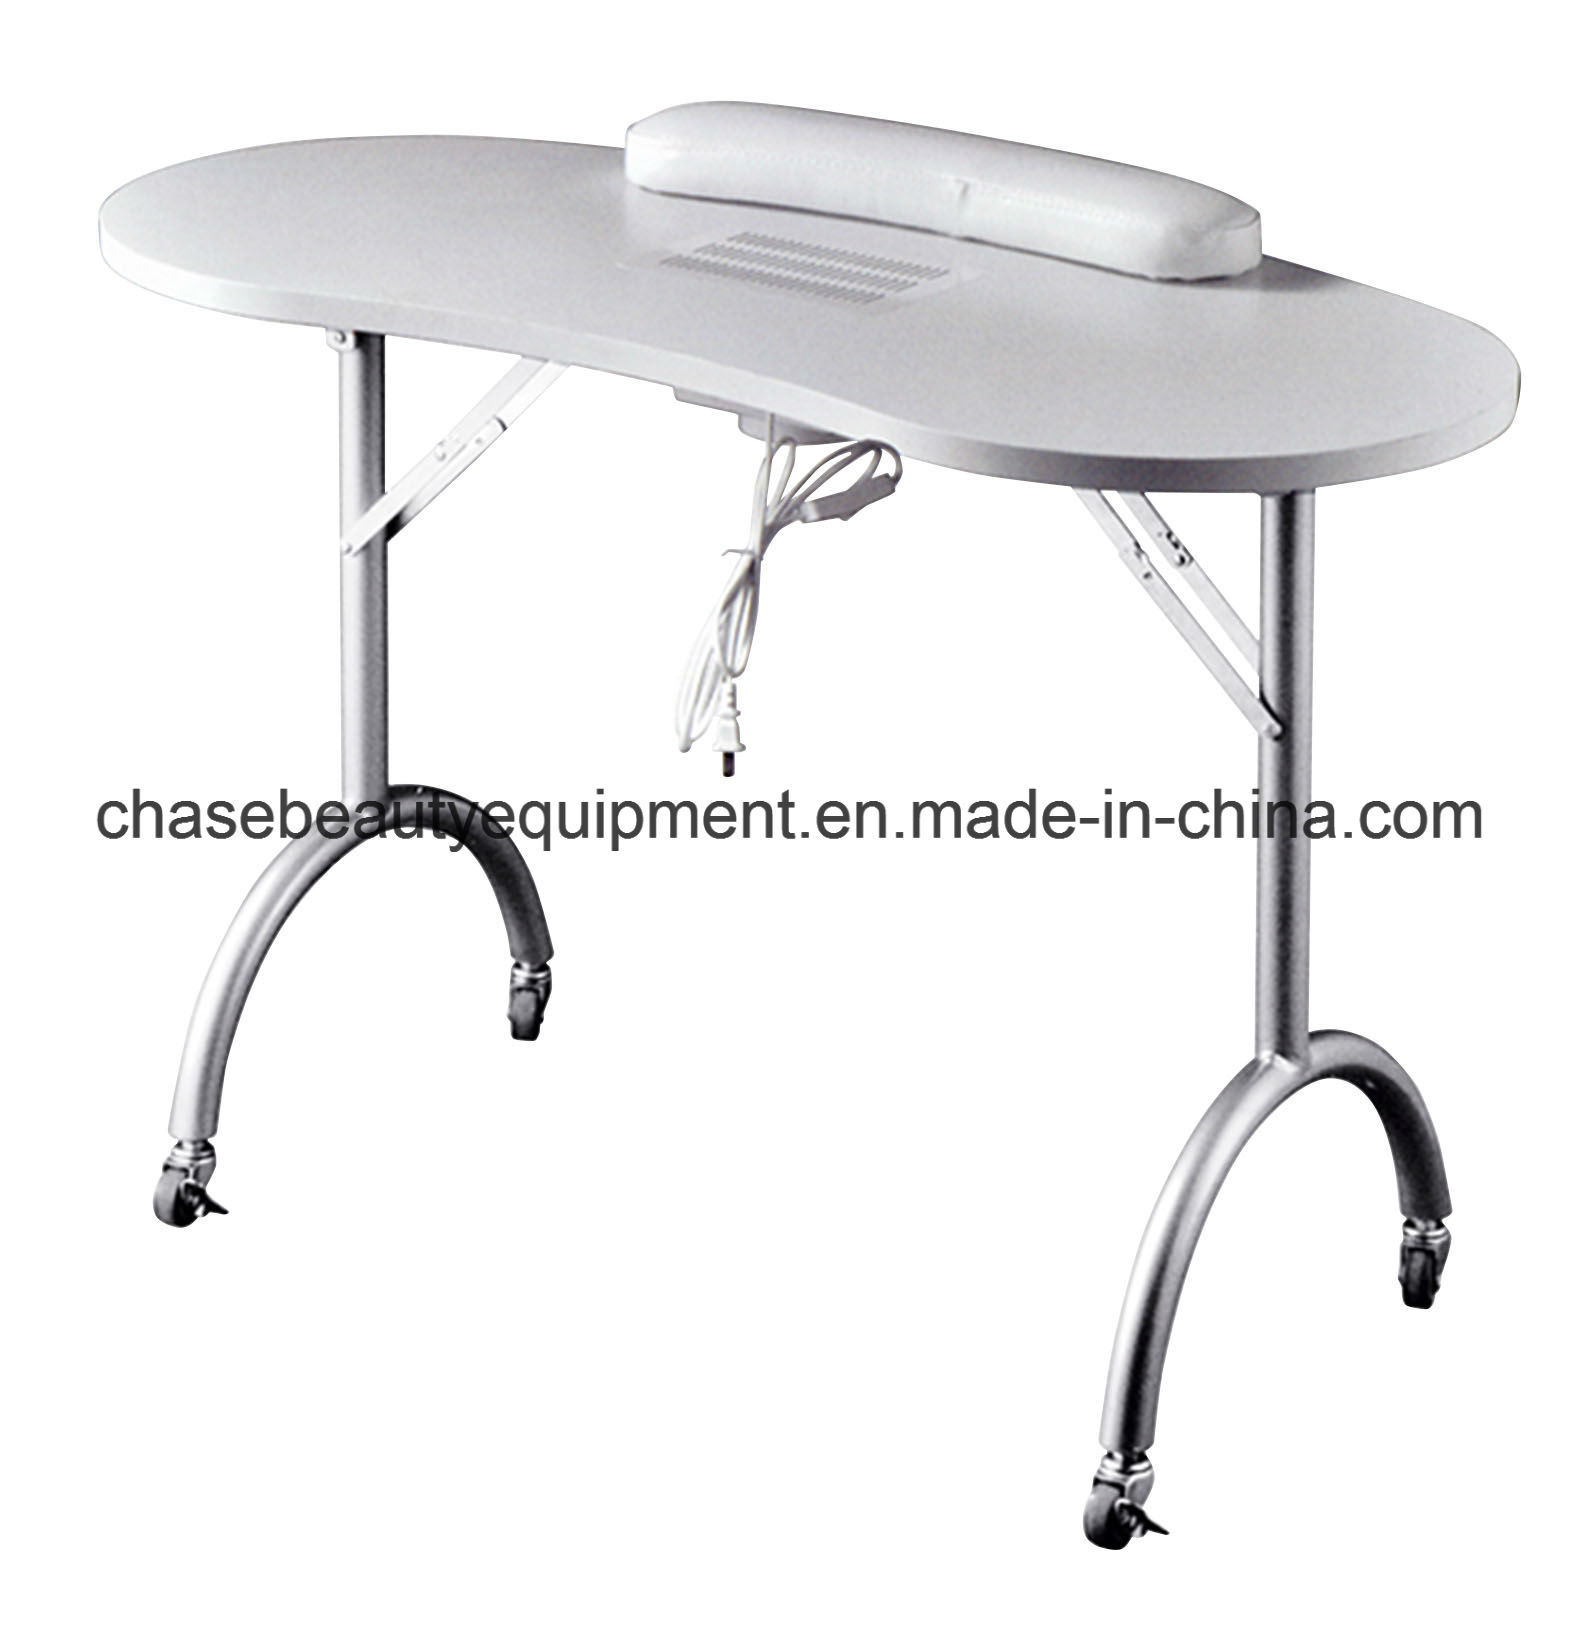 China Hot Sale Manicure Nail Table with Exhaust Fan - China Manicure ...